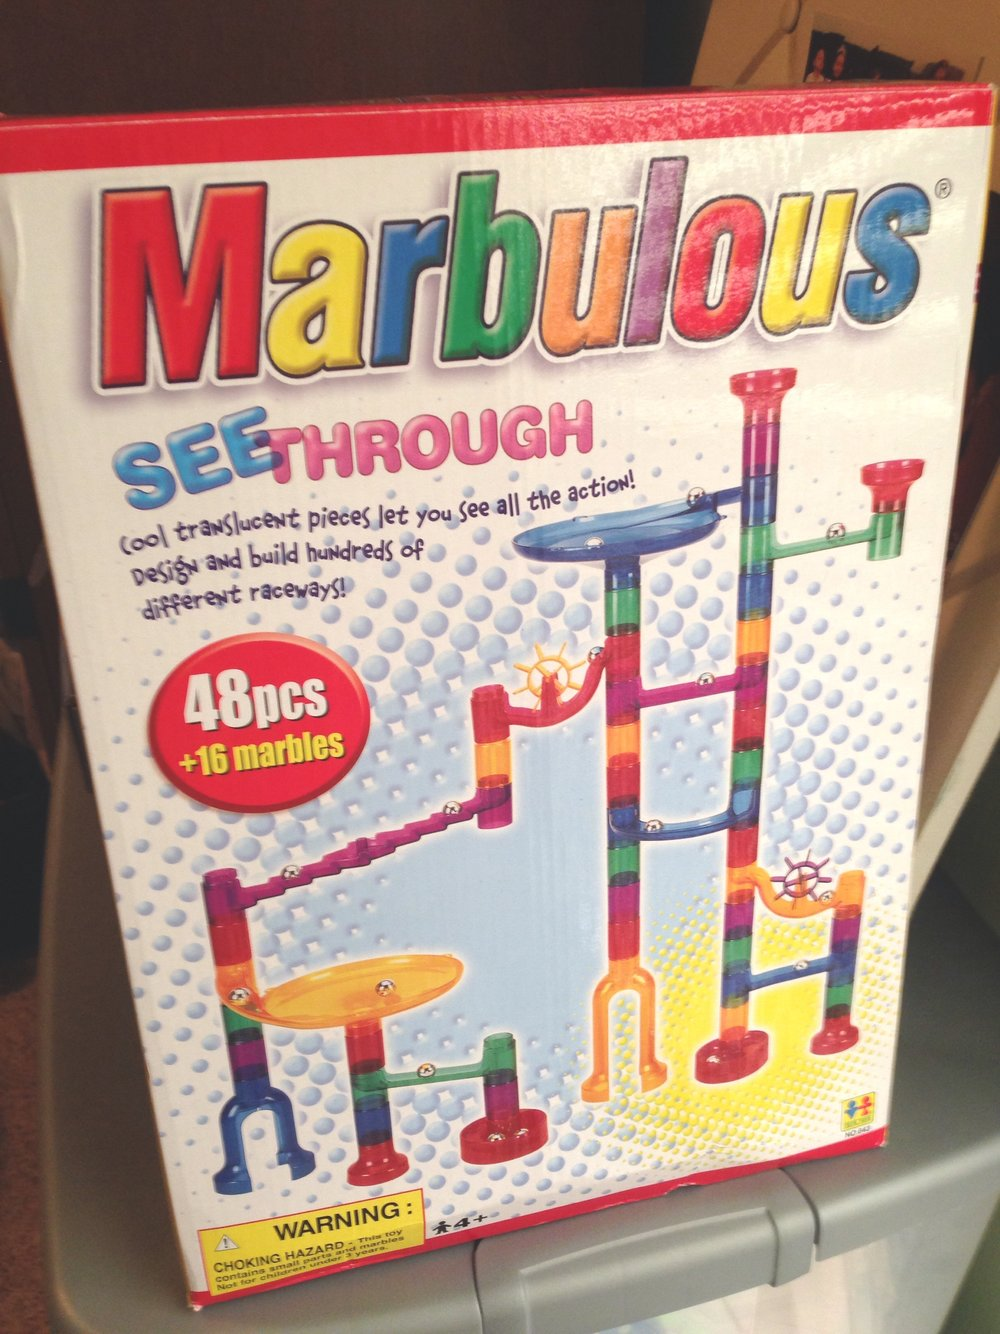 Ultra lightweight! Remove the pieces from the box and take it to go! Fun for hours!